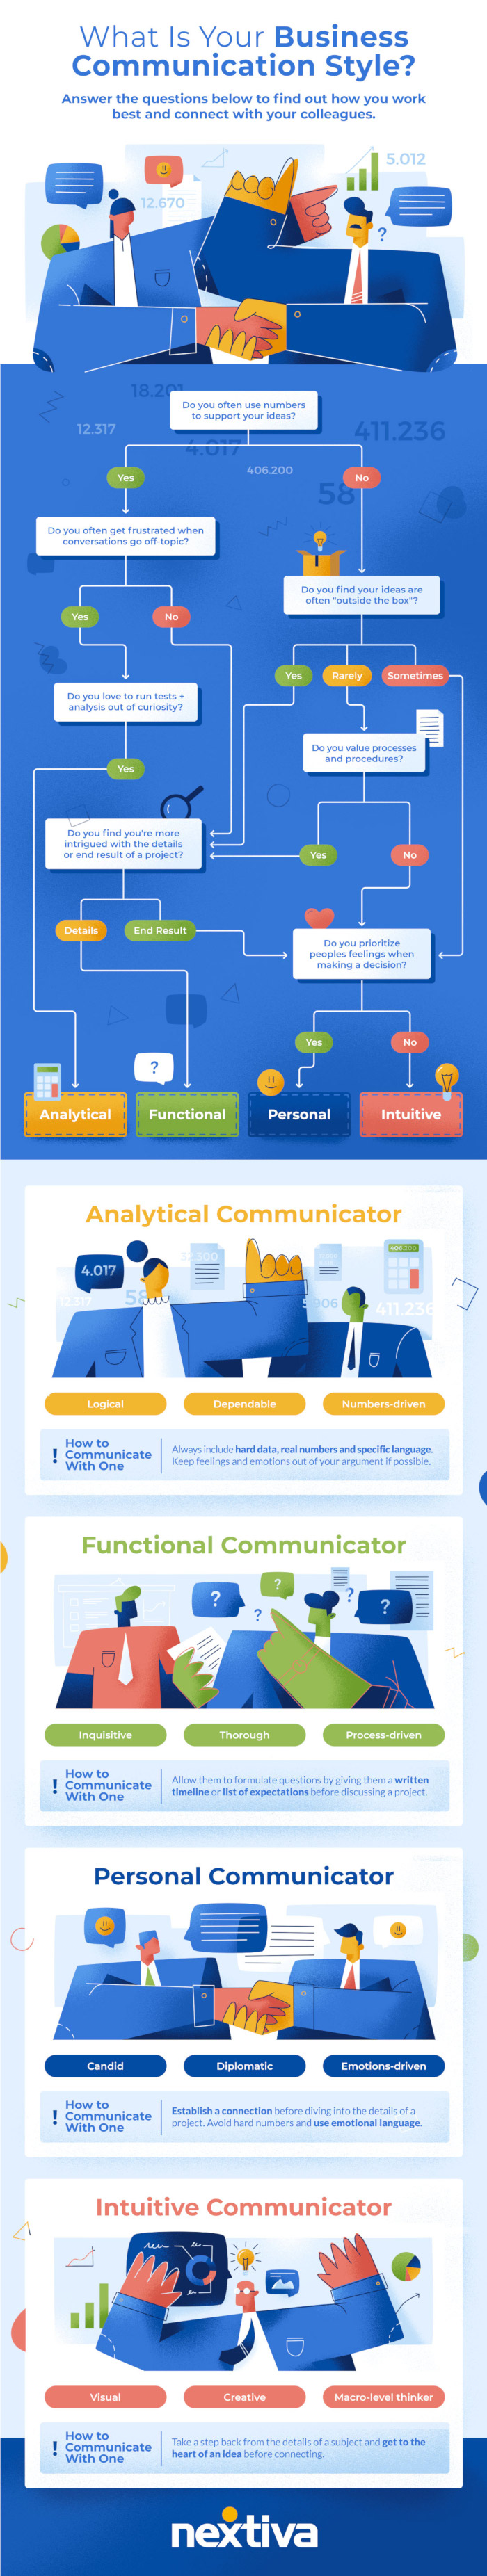 What's Your Business Communication Style? [Infographic]